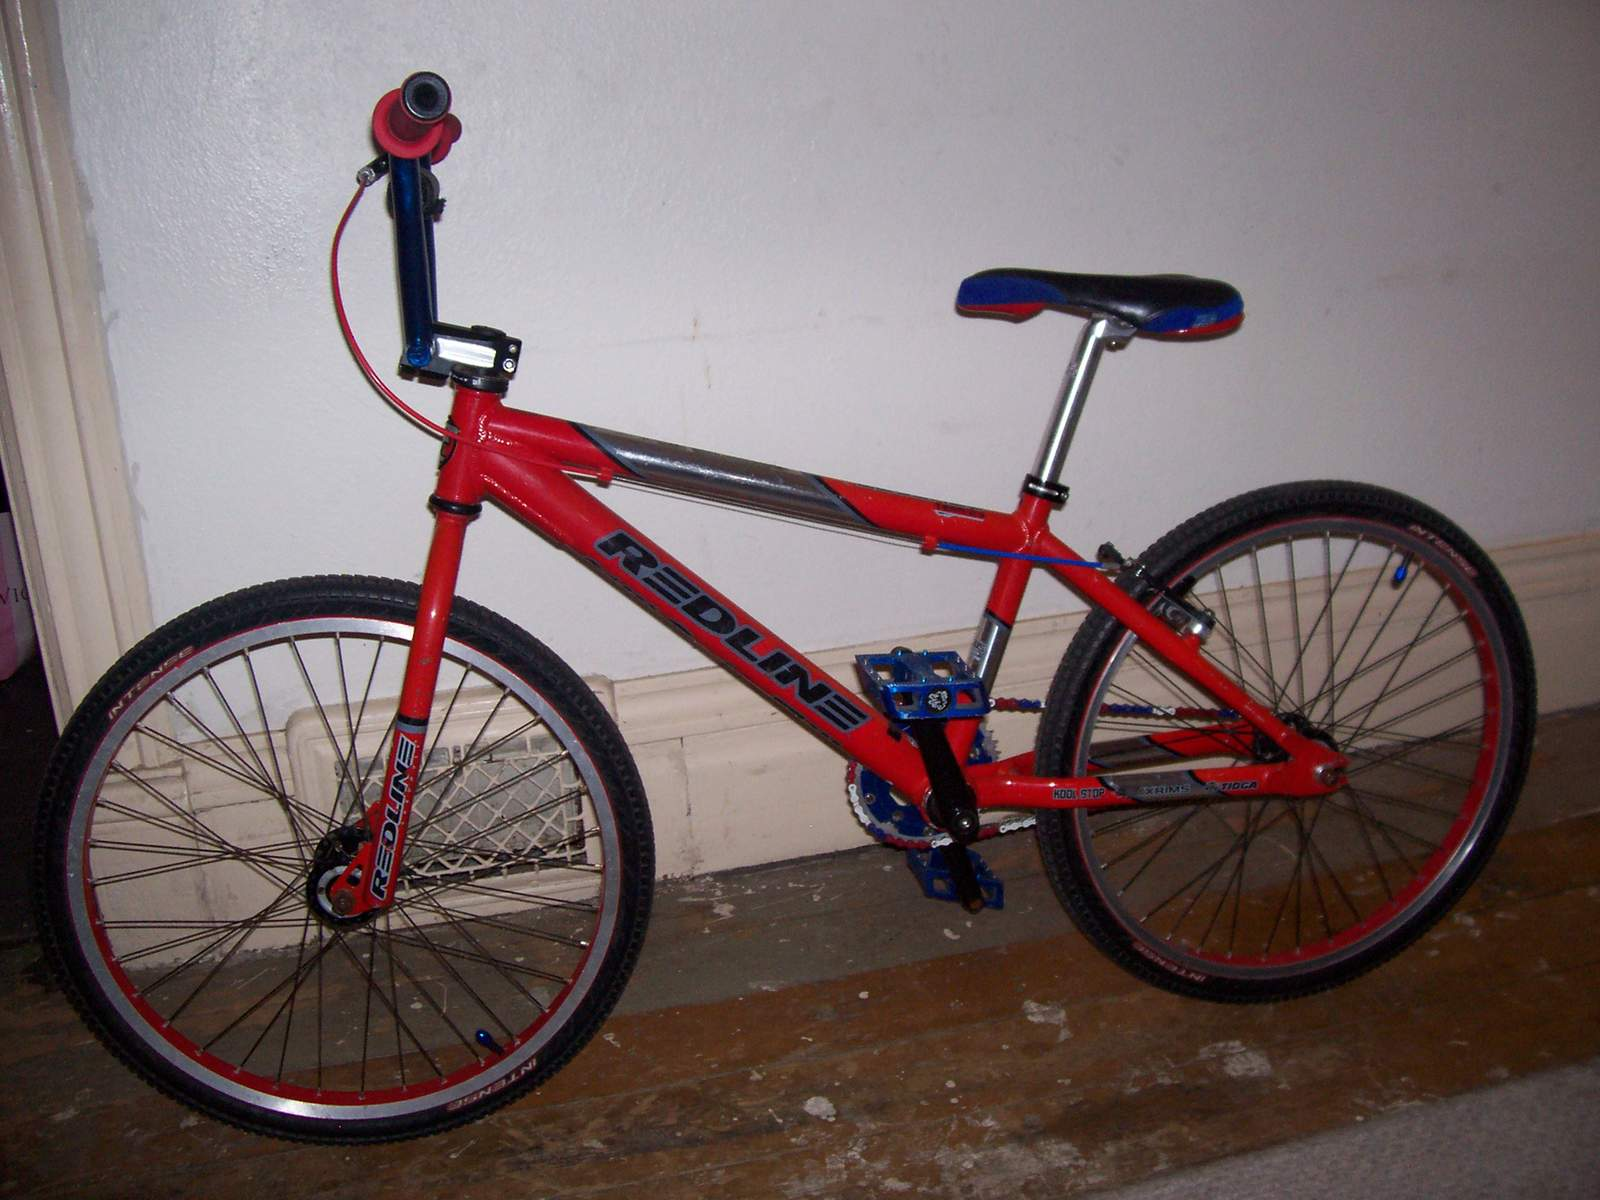 http://uploads.bmxmuseum.com/user-images/61851/100_67555825867ce5.jpg